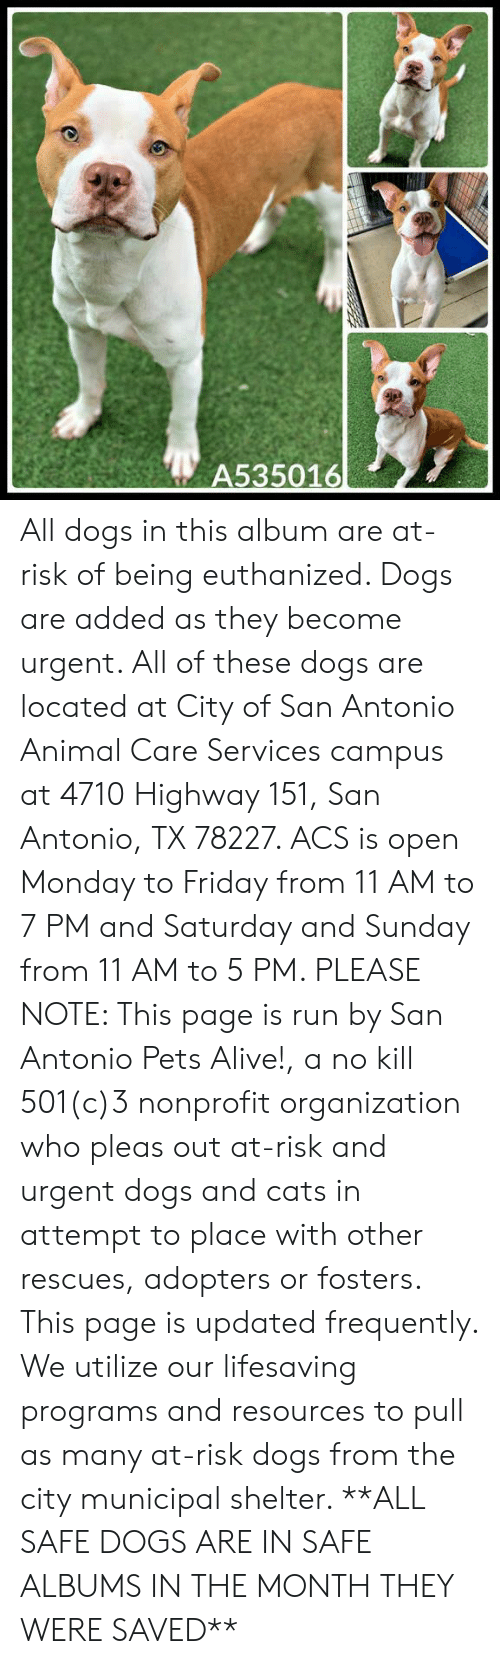 Alive, Cats, and Dogs: A535016 All dogs in this album are at-risk of being euthanized.  Dogs are added as they become urgent.  All of these dogs are located at City of San Antonio Animal Care Services campus at 4710 Highway 151, San Antonio, TX 78227. ACS is open Monday to Friday from 11 AM to 7 PM and Saturday and Sunday from 11 AM to 5 PM.   PLEASE NOTE: This page is run by San Antonio Pets Alive!, a no kill 501(c)3 nonprofit organization who pleas out at-risk and urgent dogs and cats in attempt to place with other rescues, adopters or fosters.   This page is updated frequently.  We utilize our lifesaving programs and resources to pull as many at-risk dogs from the city municipal shelter. **ALL SAFE DOGS ARE IN SAFE ALBUMS IN THE MONTH THEY WERE SAVED**